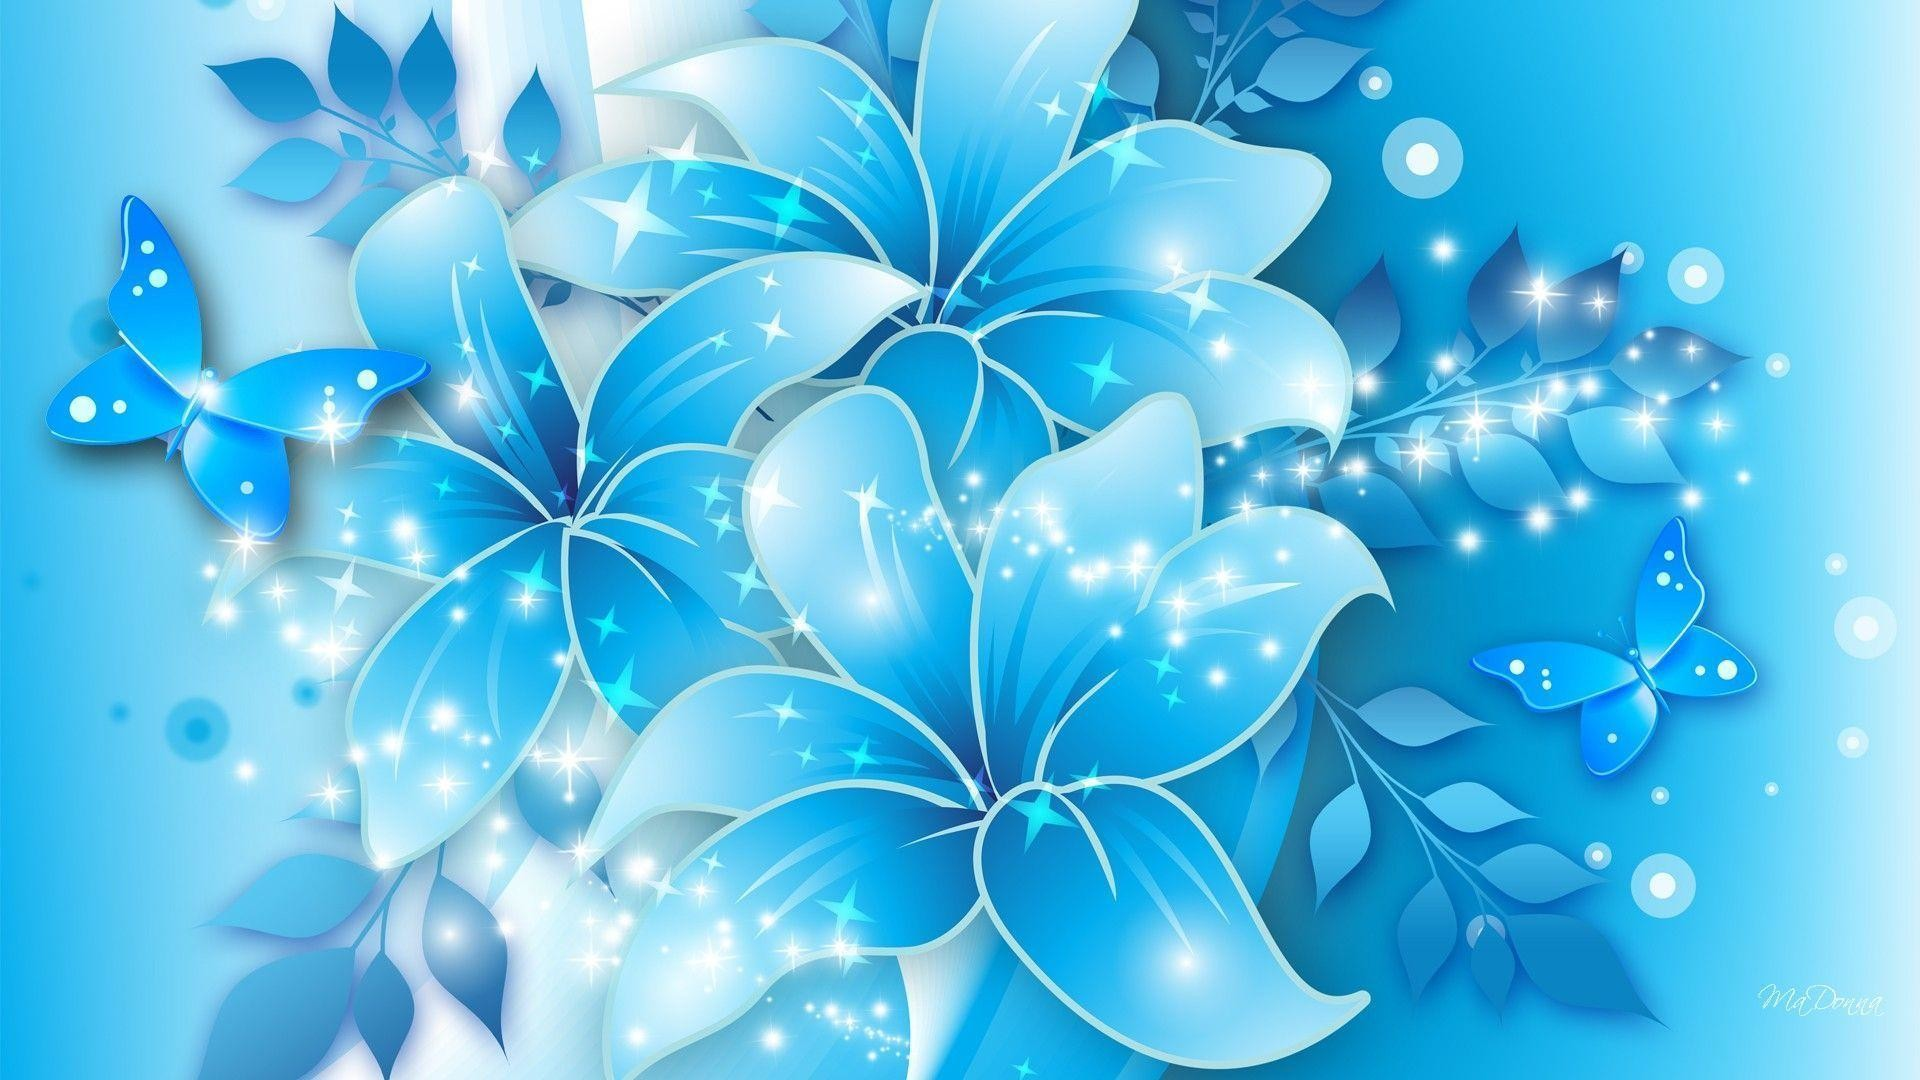 Blue flowers background 49 images 1920x1080 wallpapers for light blue flower background design izmirmasajfo Image collections